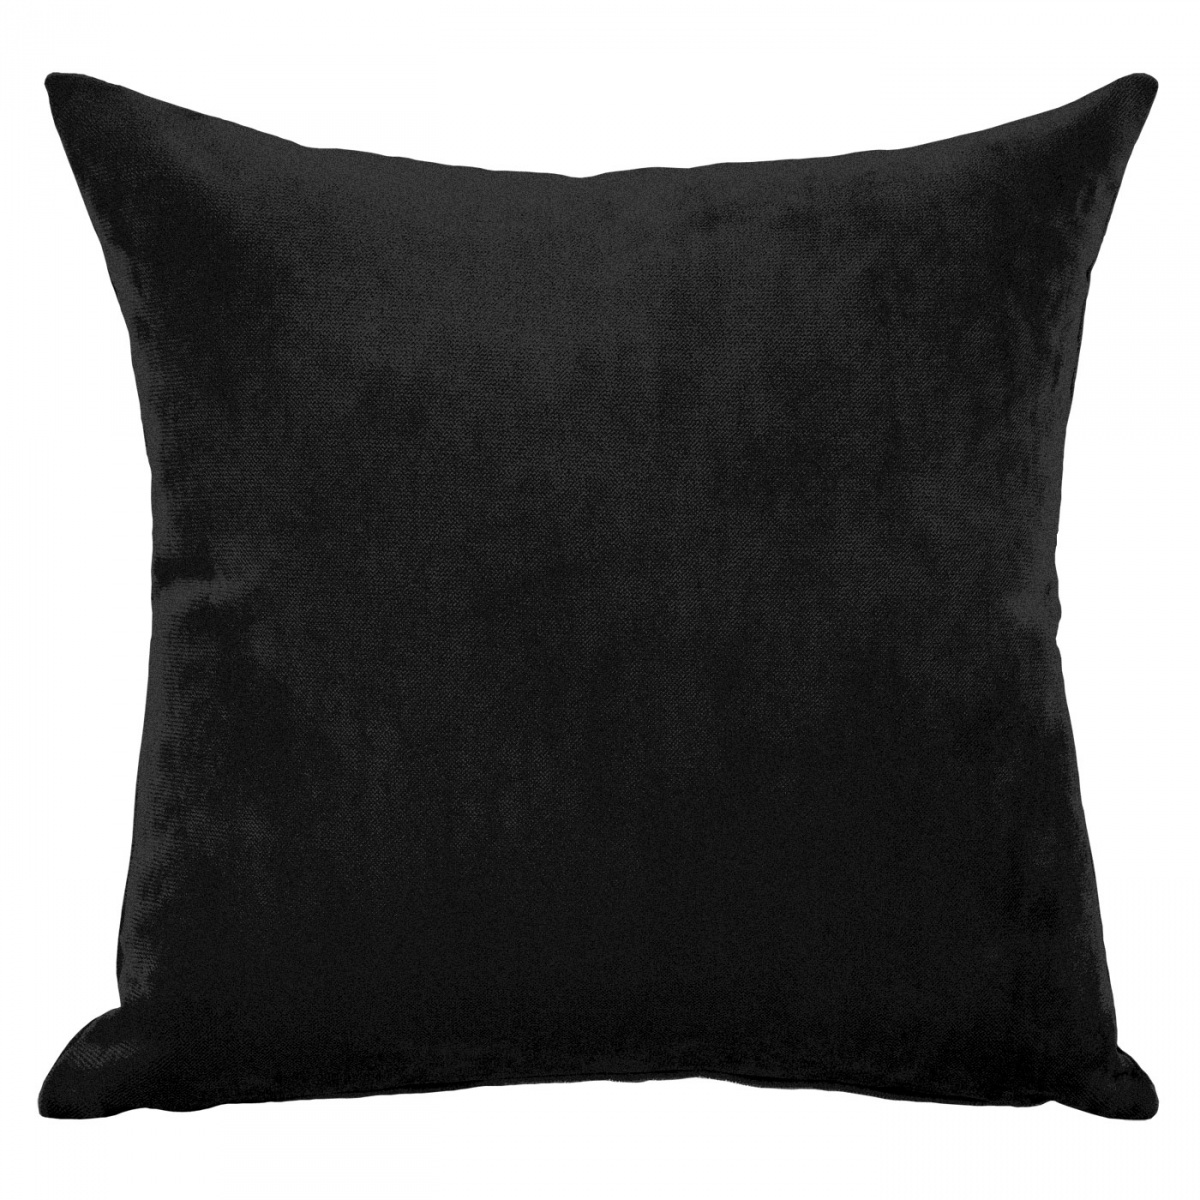 Mystere Ebony Velvet Cushion - 50x50cm